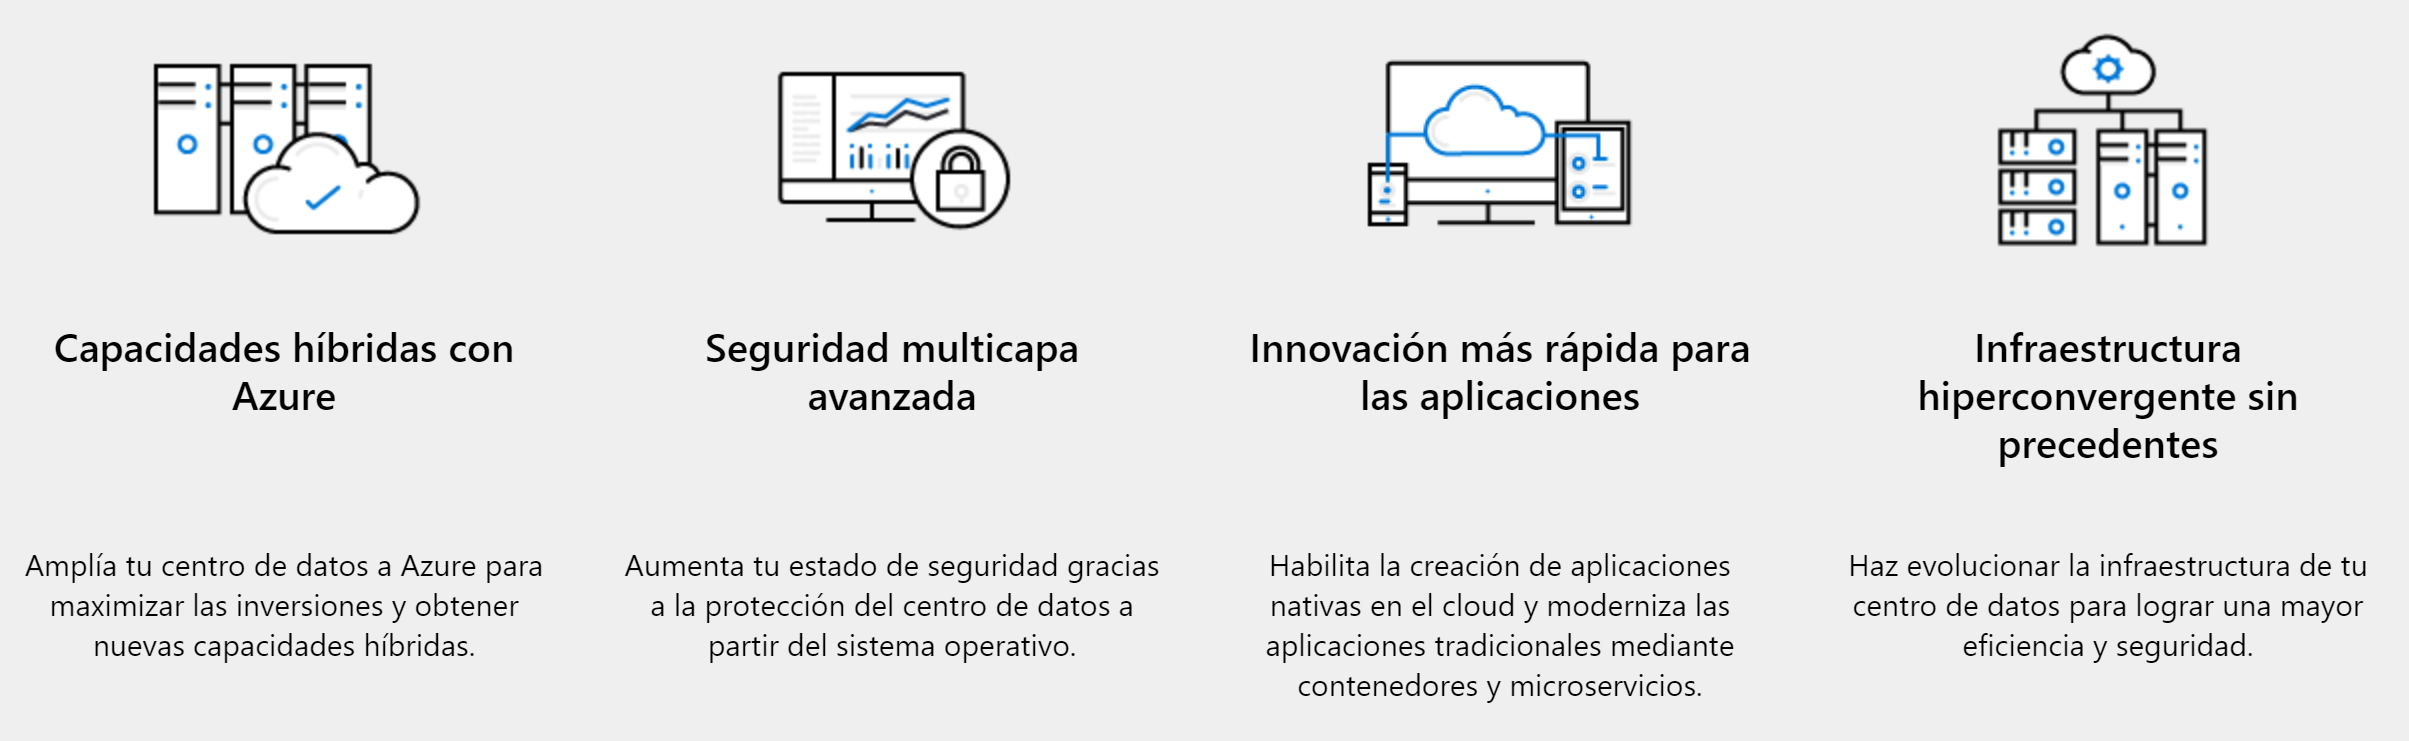 Windows Server 2016: la solución correcta para impulsar su empresa